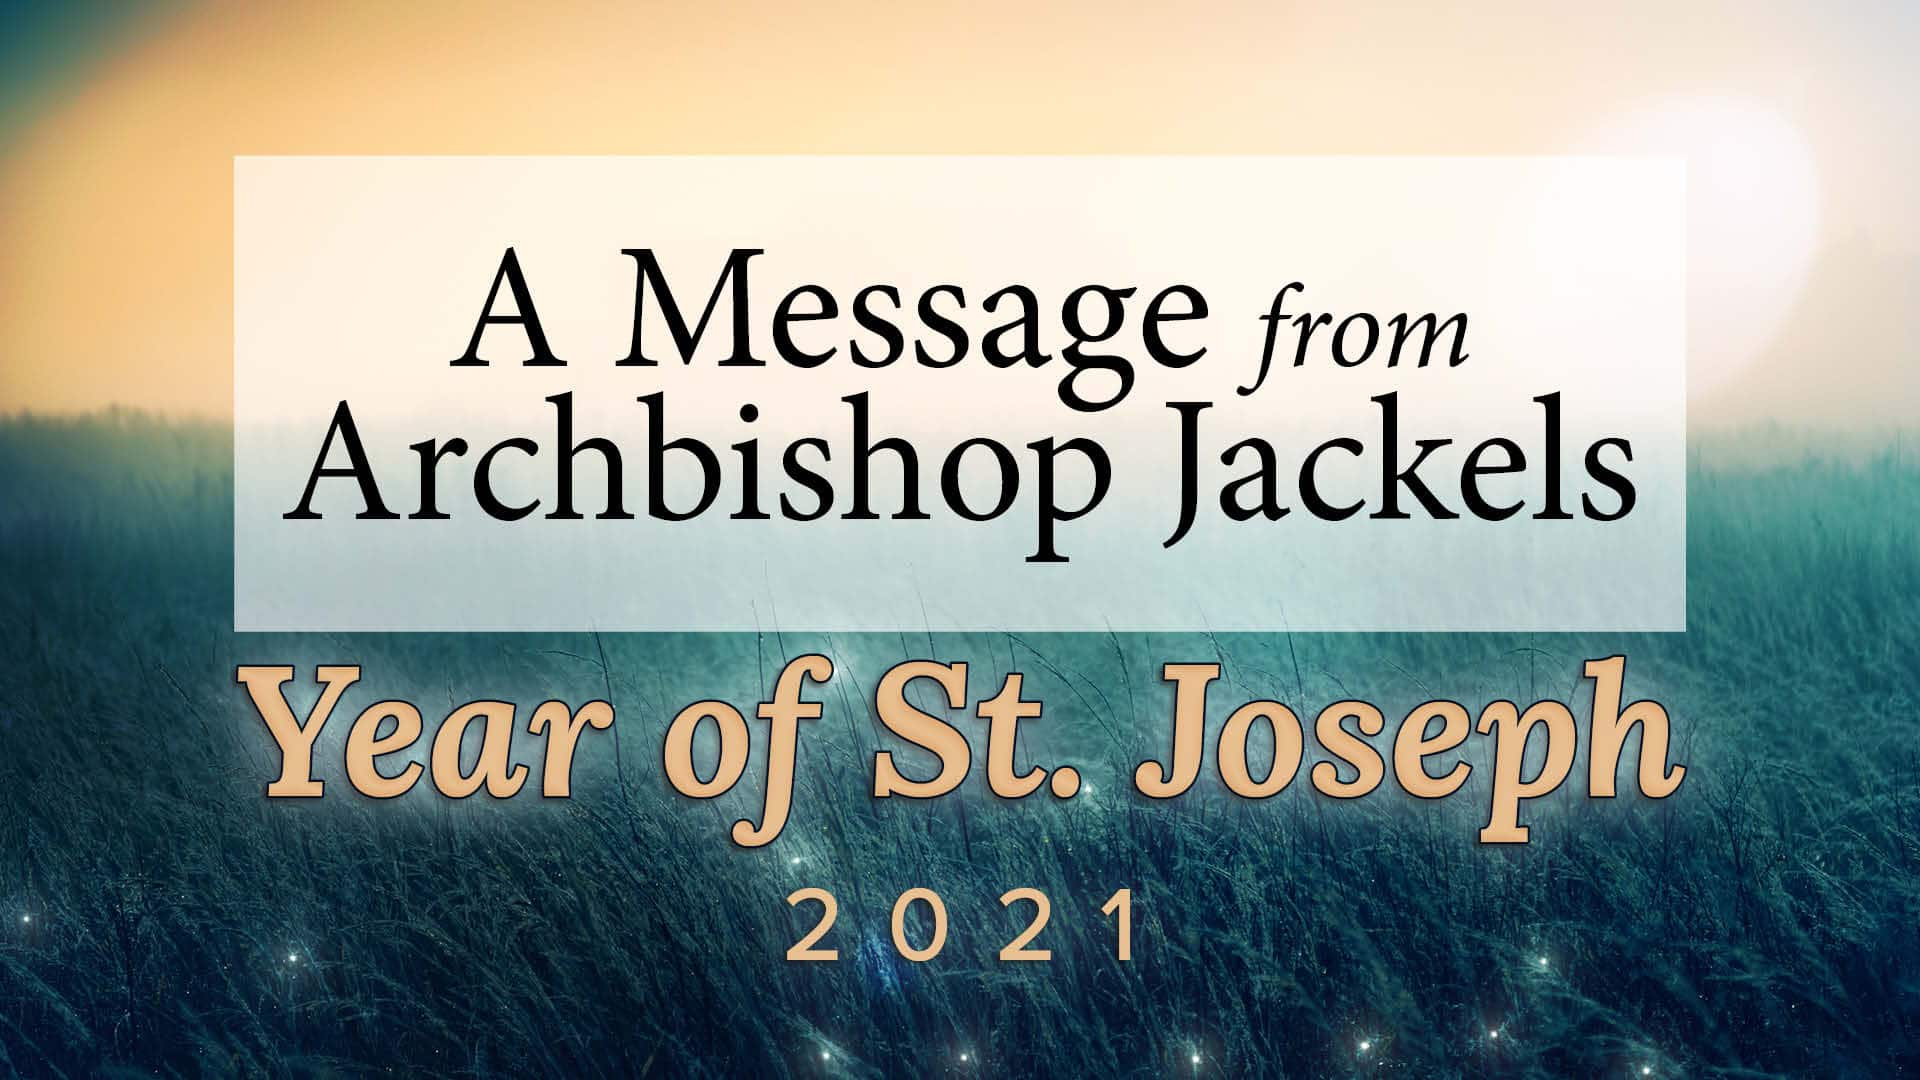 Introduction to the Year of St. Joseph